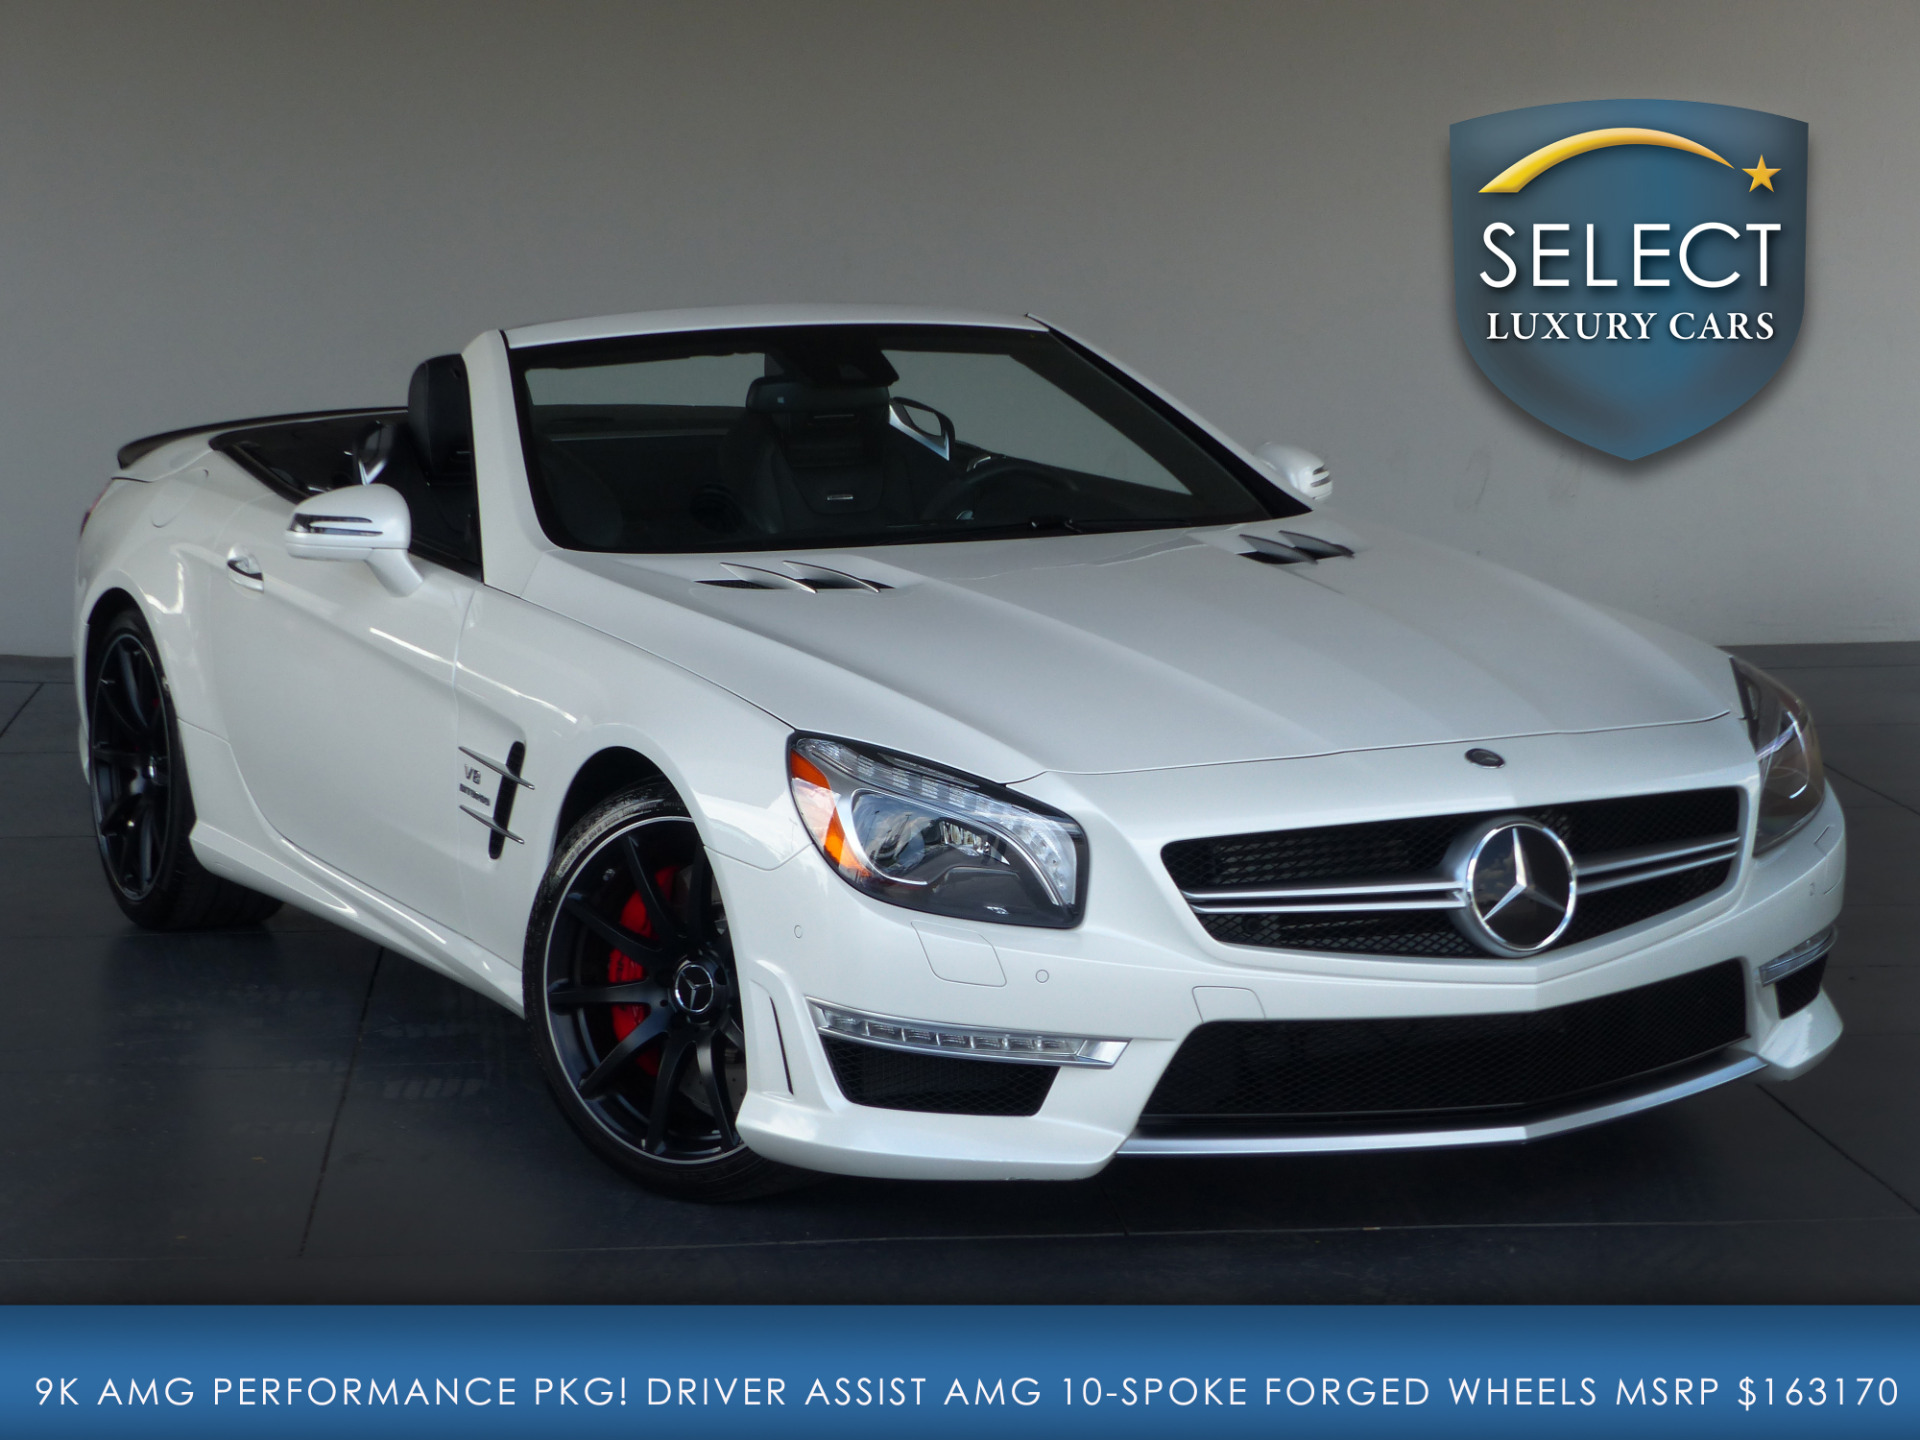 Used 2014 mercedes benz sl class sl63 amg marietta ga for Mercedes benz sl500 amg